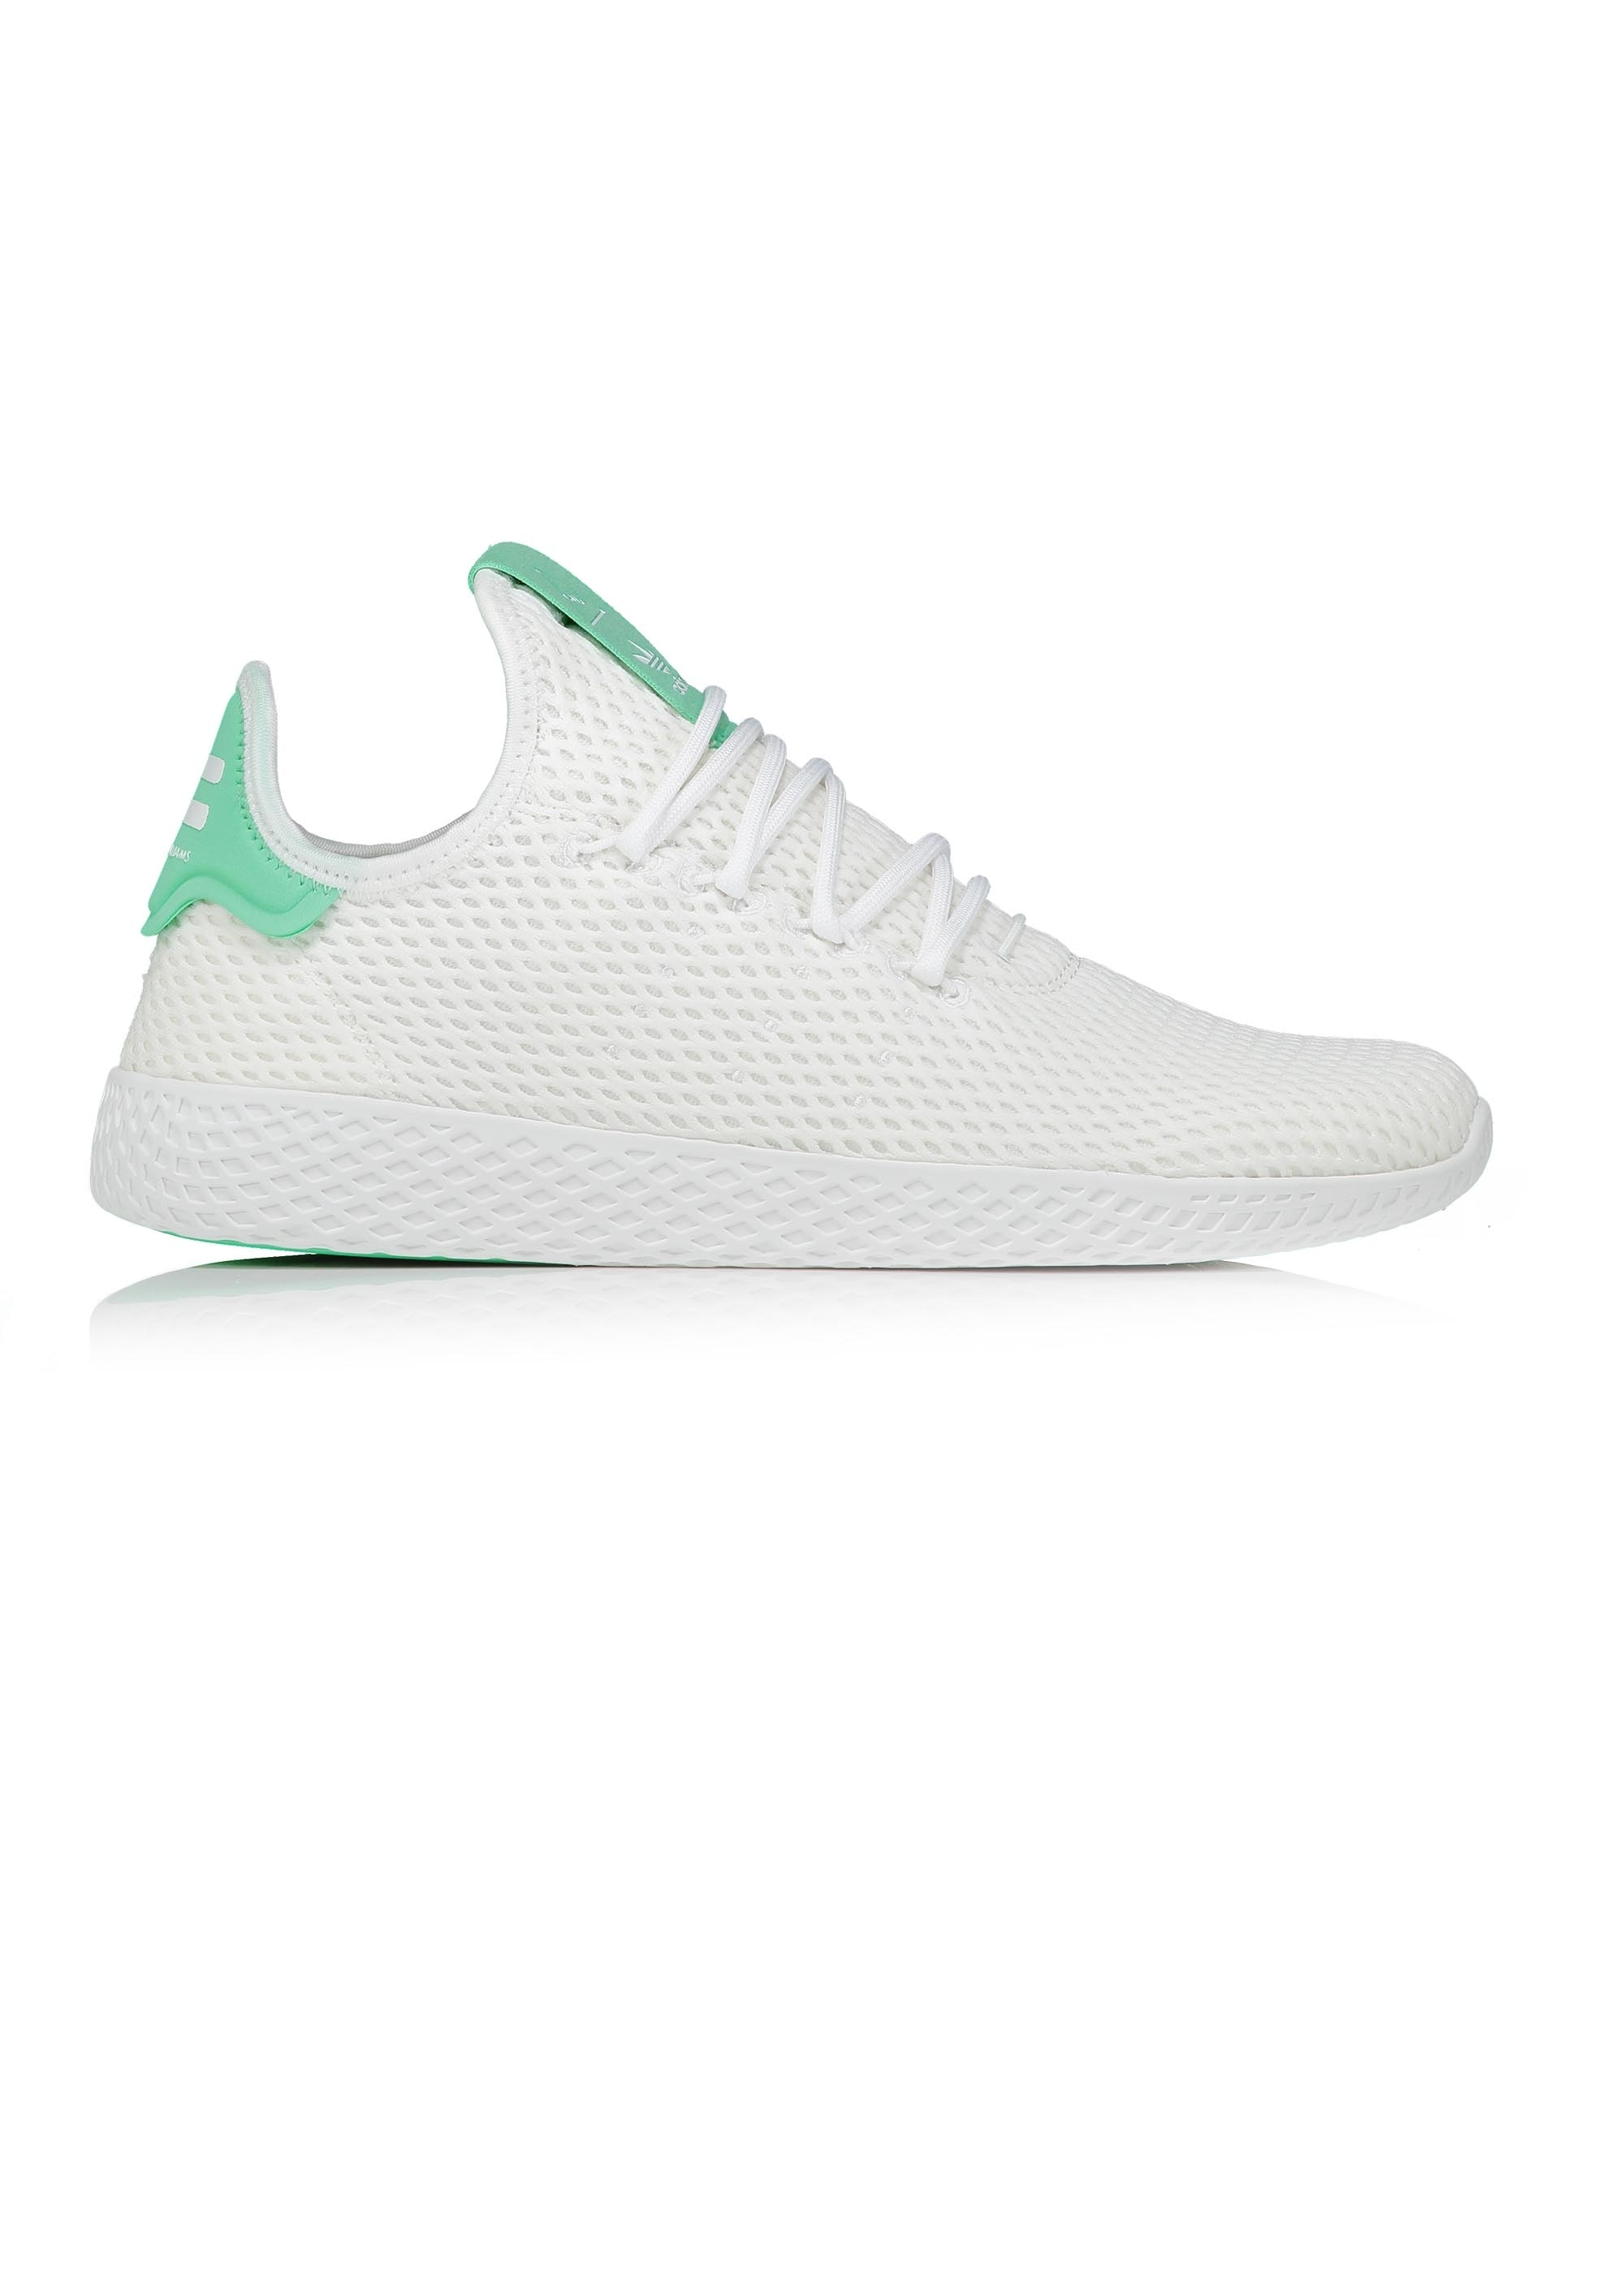 9ae0d2020799 adidas Originals Footwear Pharrell Williams Tennis Hu - White ...